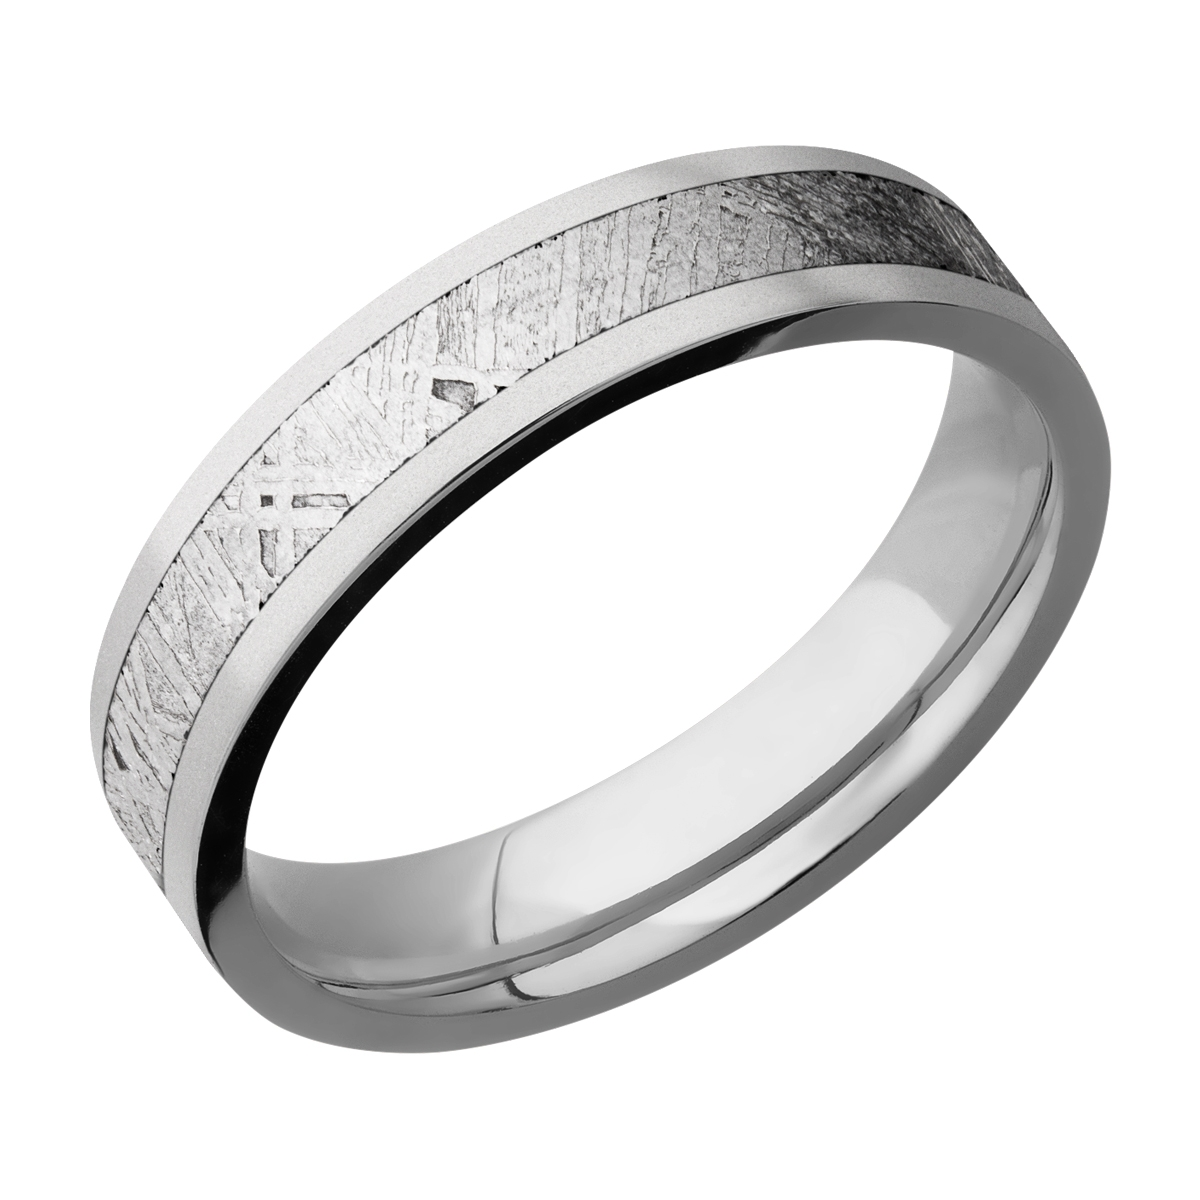 Lashbrook 5F13/METEORITE Titanium Wedding Ring or Band